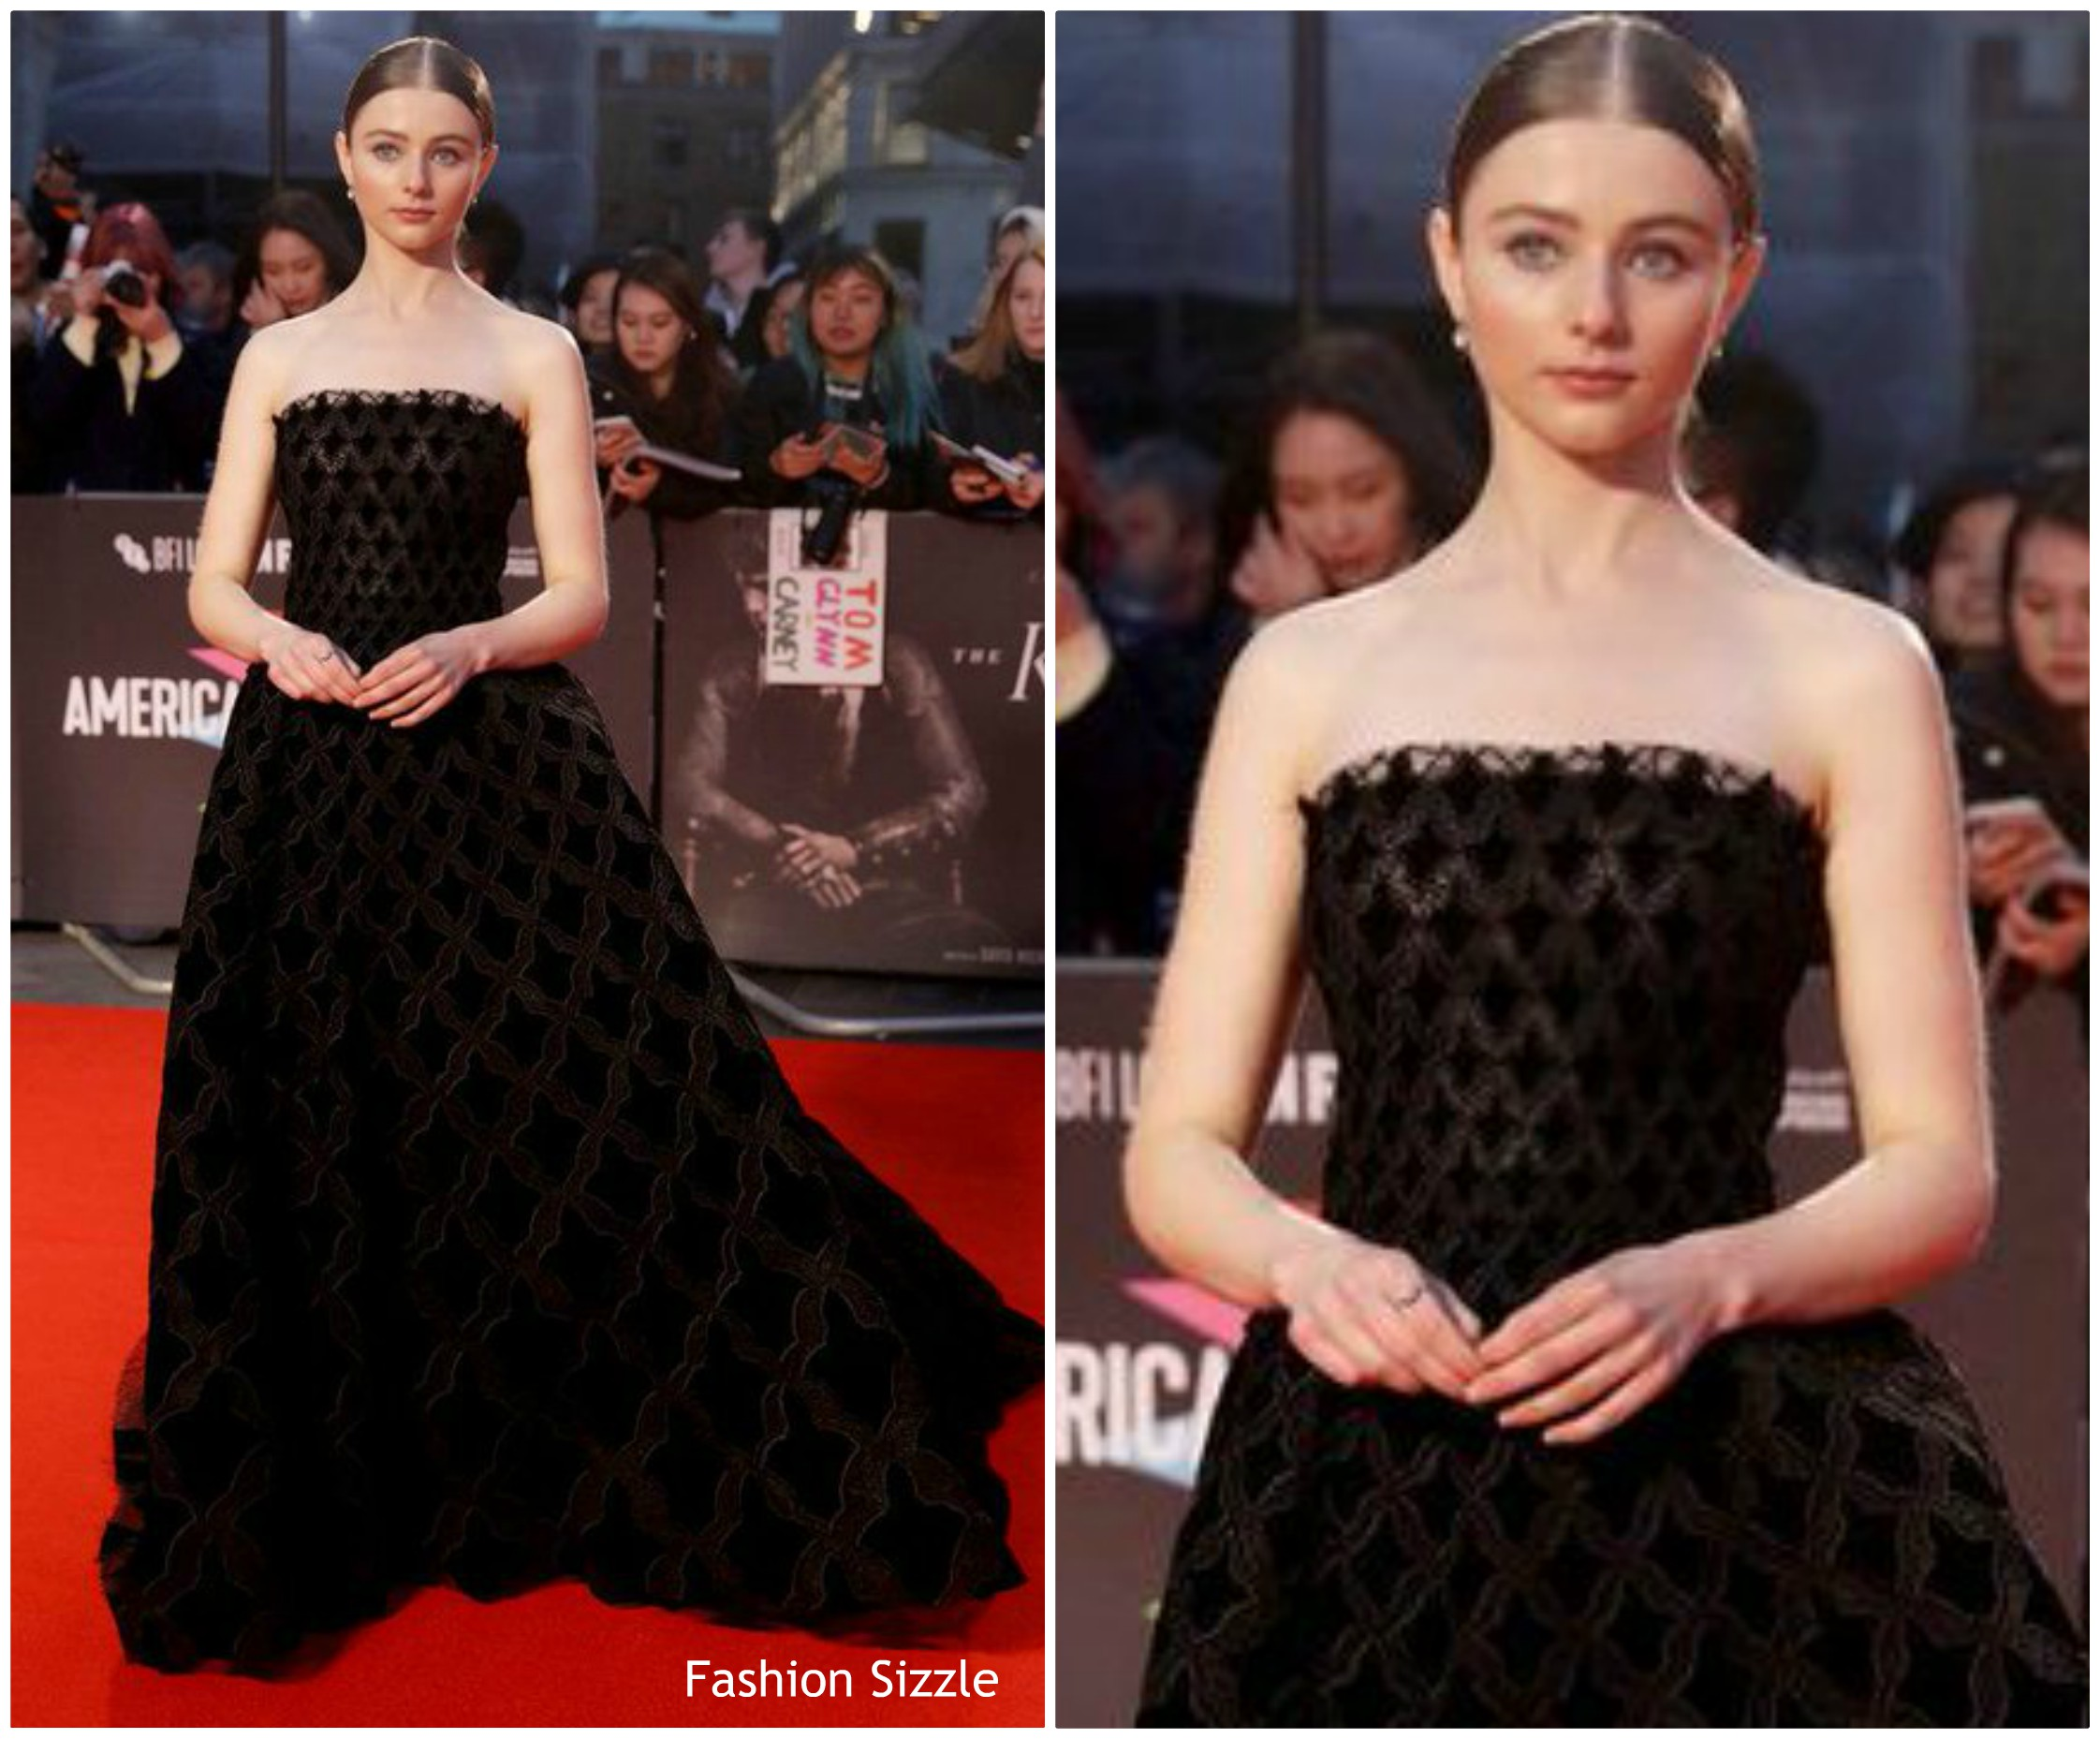 thomasin-mckenzie-in-oscar-de-la-renta-the-king-london-film-festival-premiere